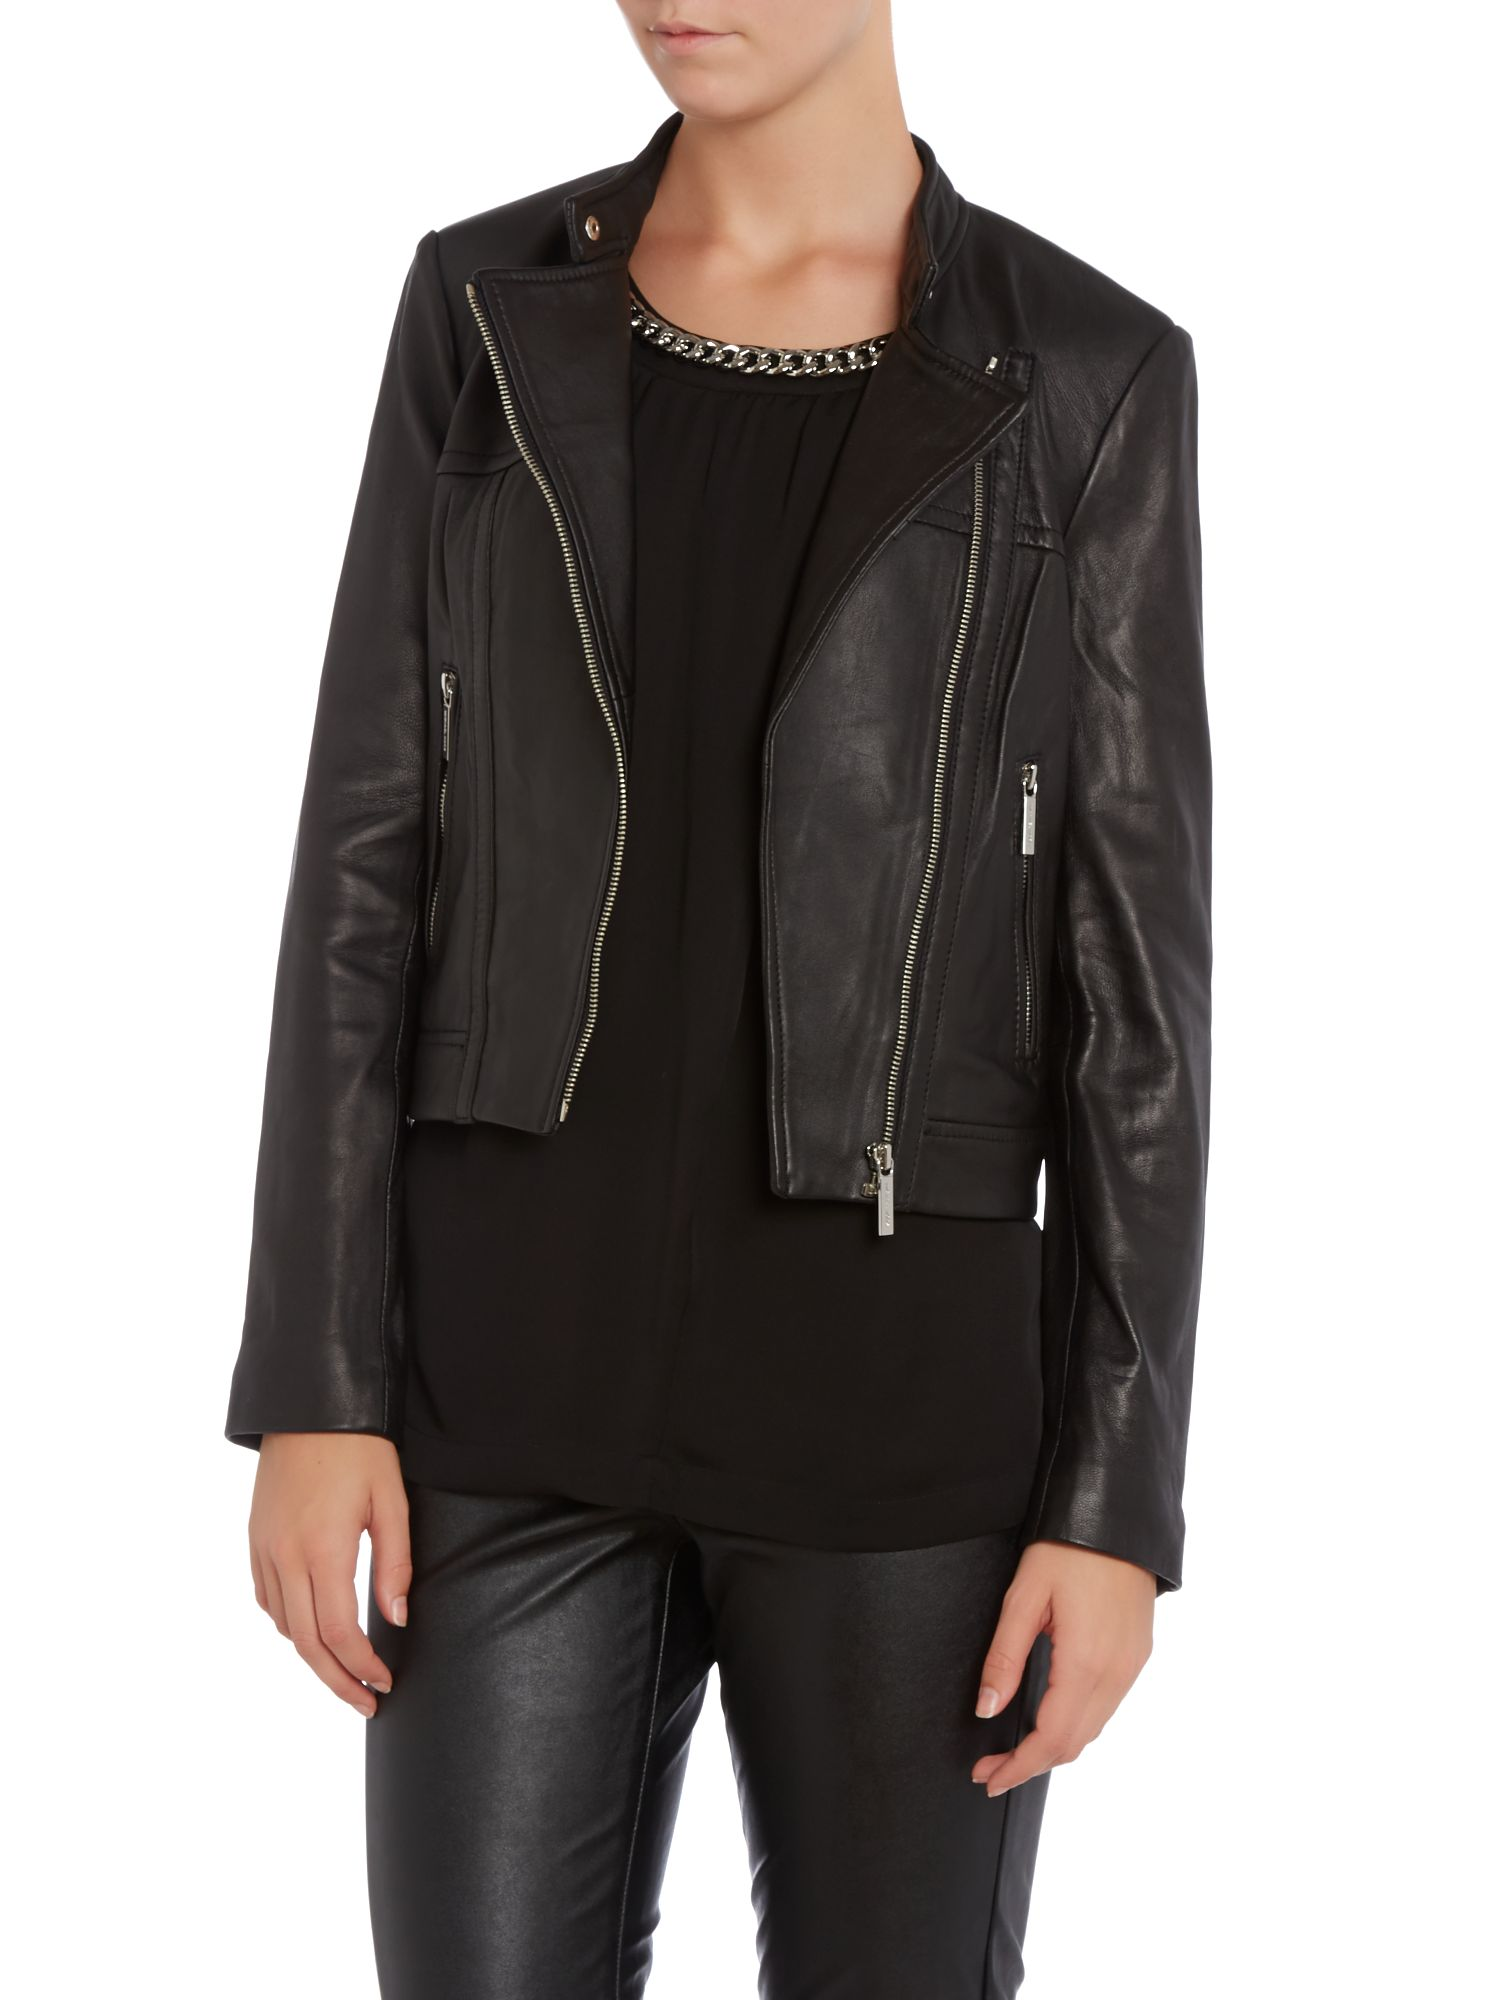 Long sleeved biker jacket